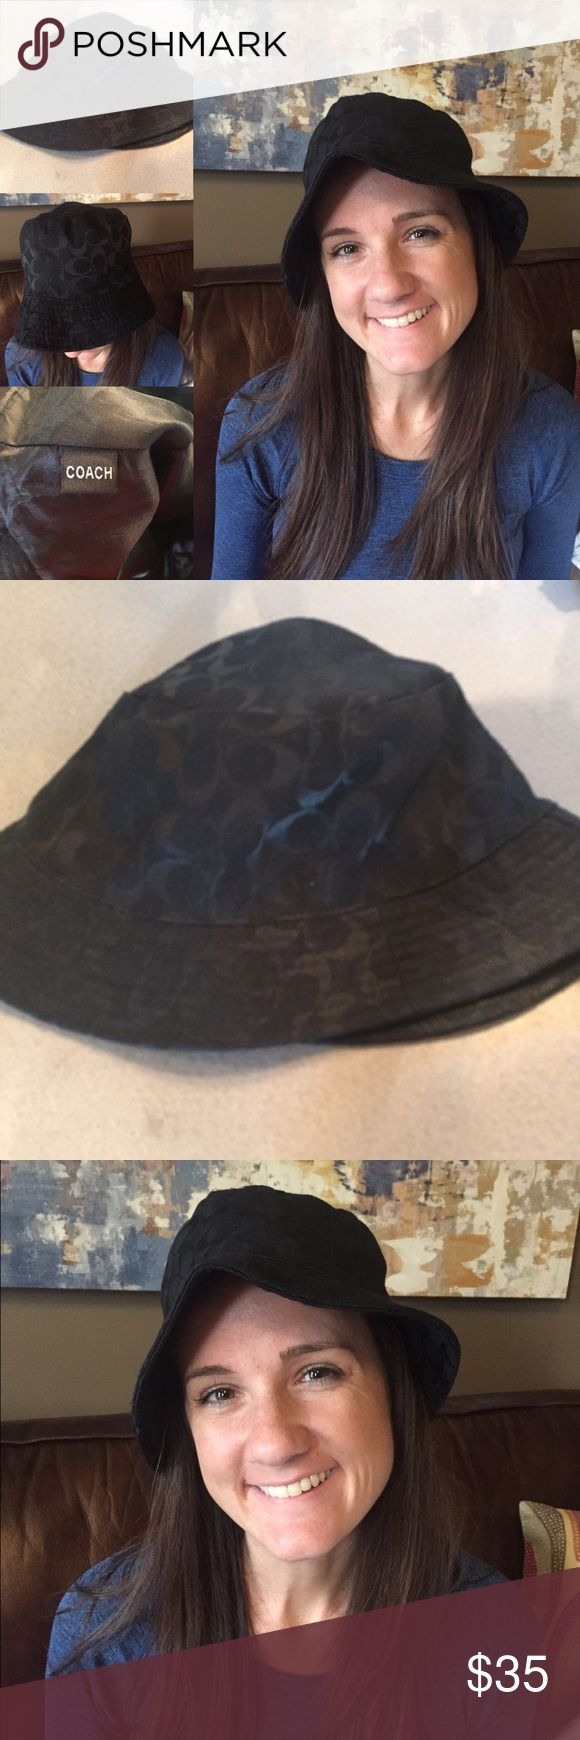 Gently Used Black Coach Hat Gently Used Black Coach Hat. No signs of wear, very cute! Coach Accessories Hats